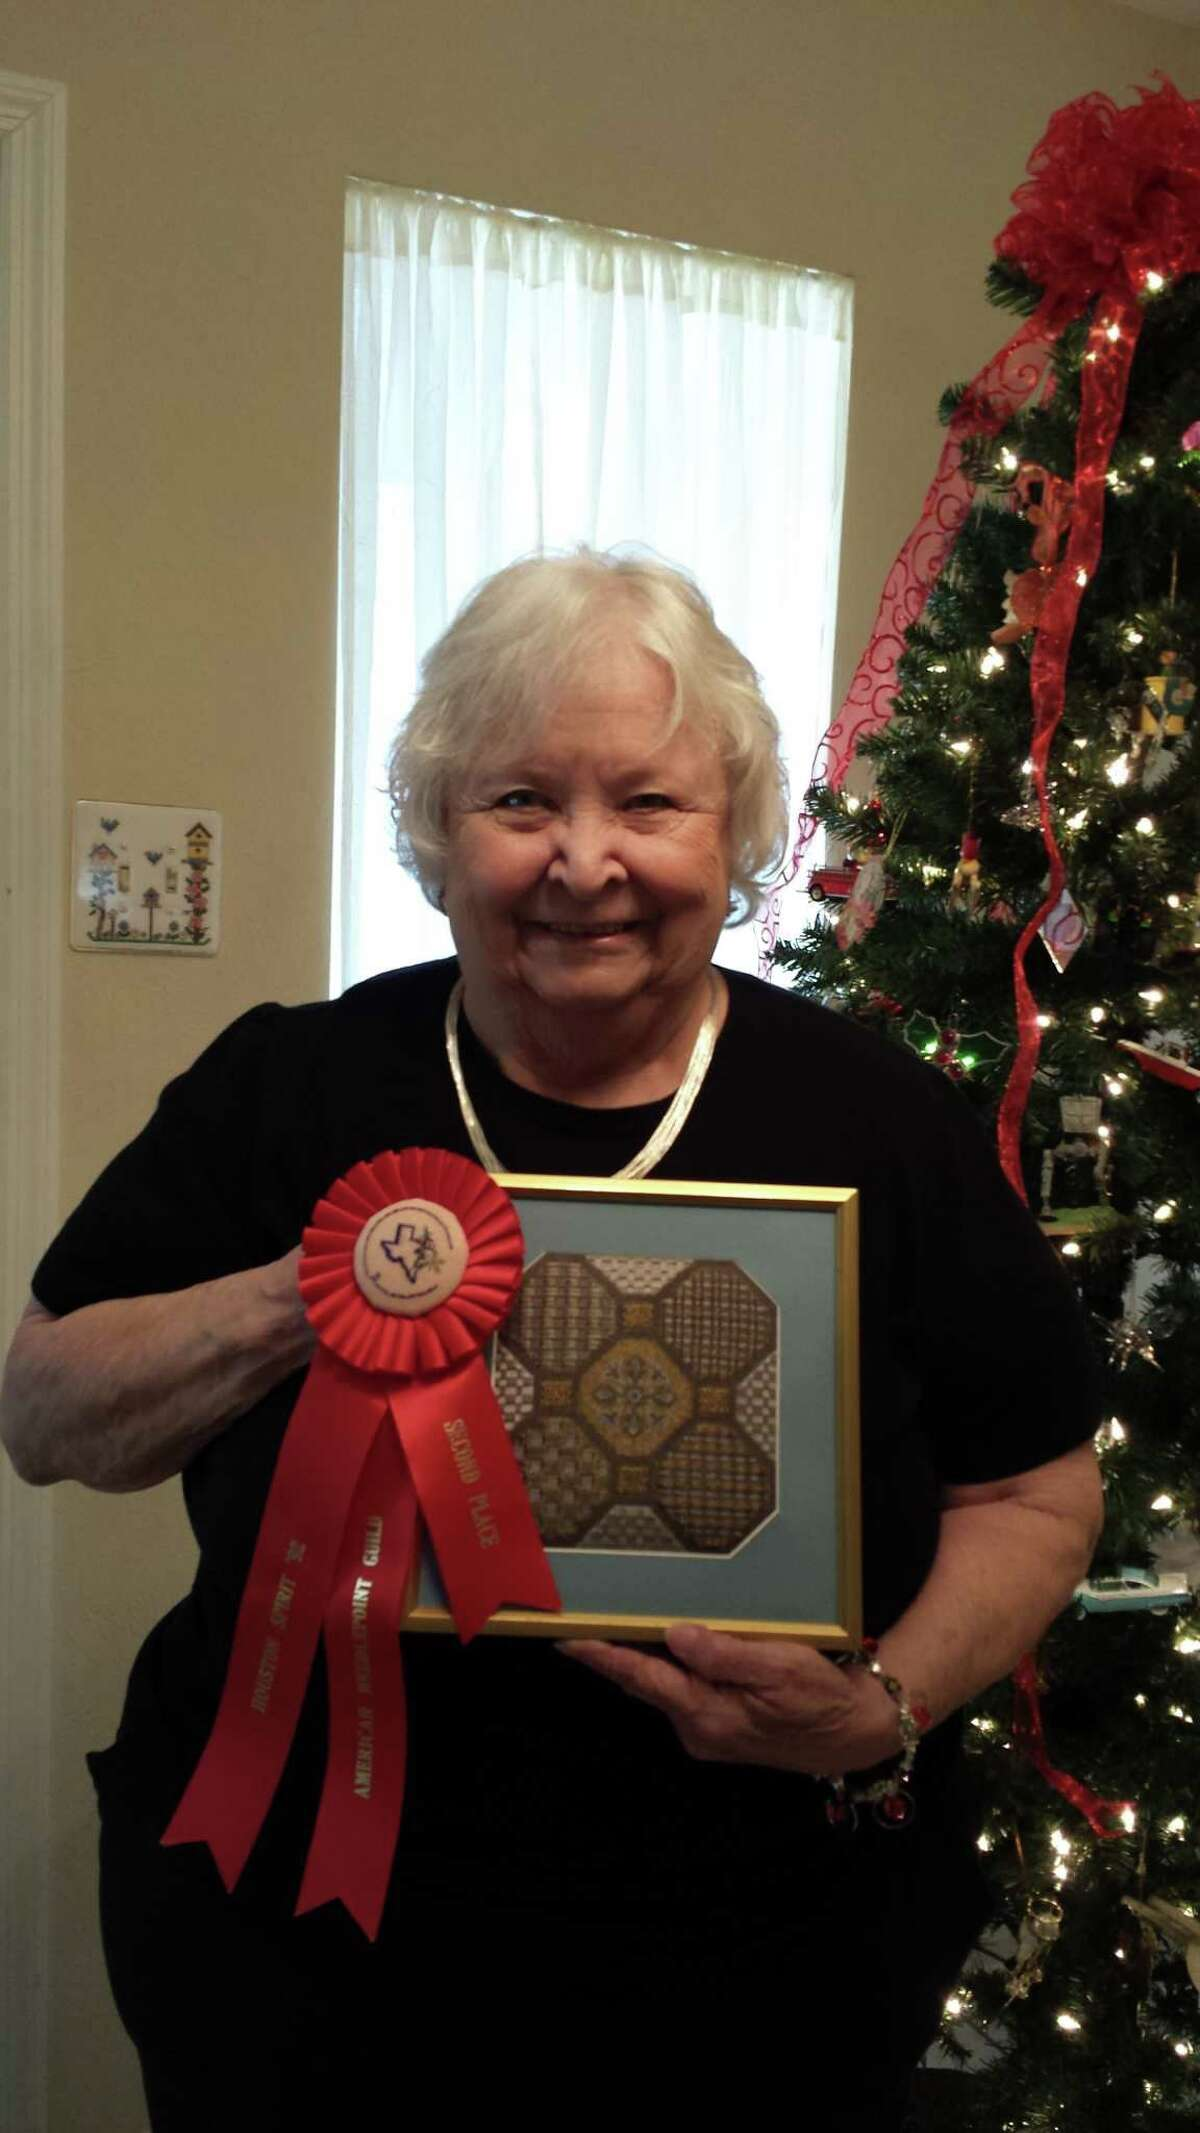 Barbara Beasley has been a member of the American Needlepoint Guild for more than 30 years.